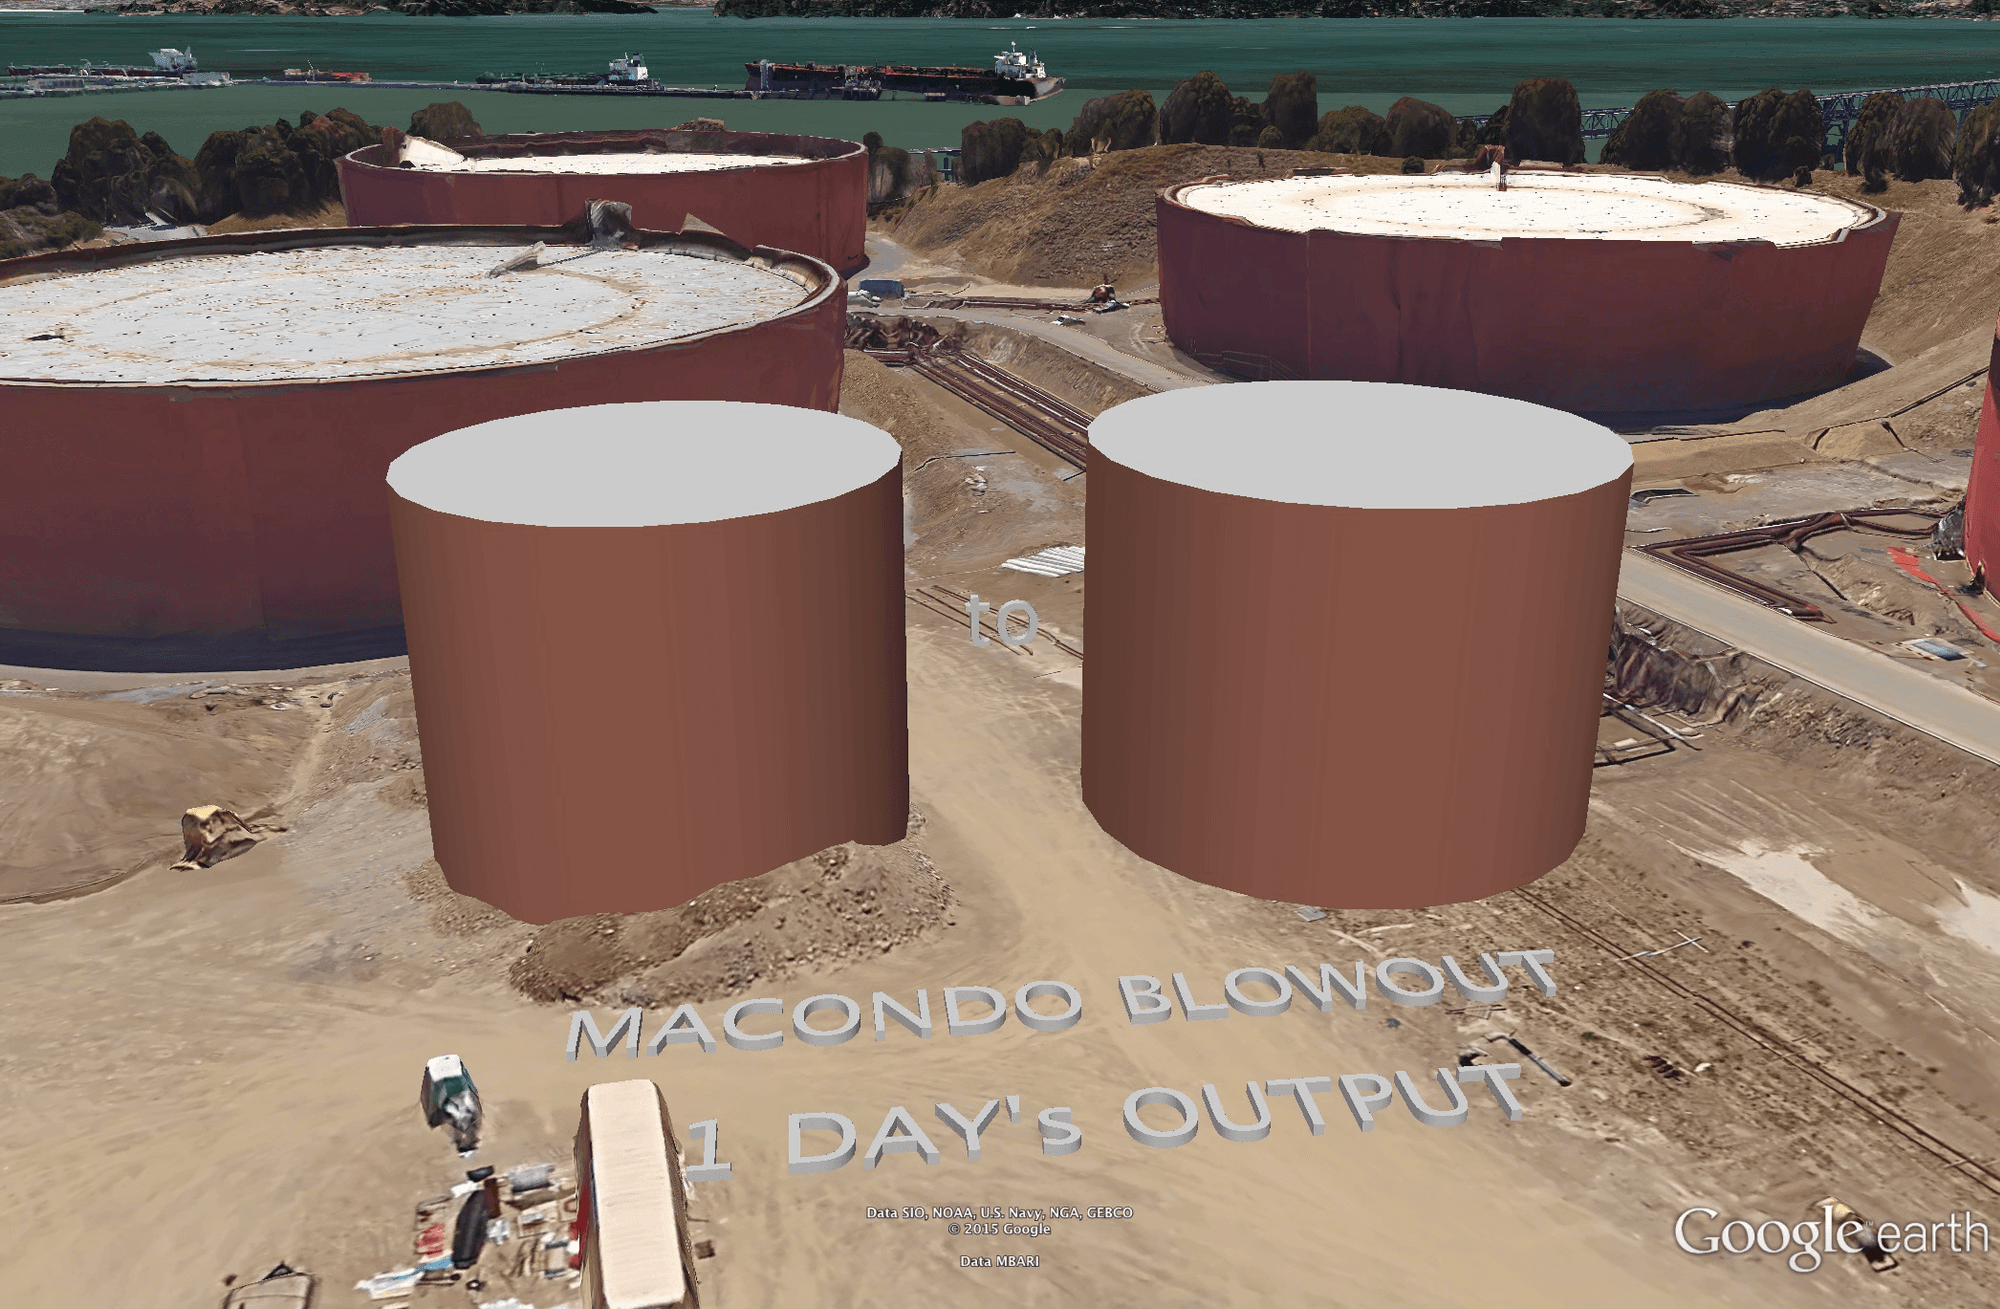 One day's output from the Macondo wellhead blowout would have filled a hypothetical tank the same height (19.6m or 64 ft) but 24 to 27 meters (80 to 88 ft) in diameter.